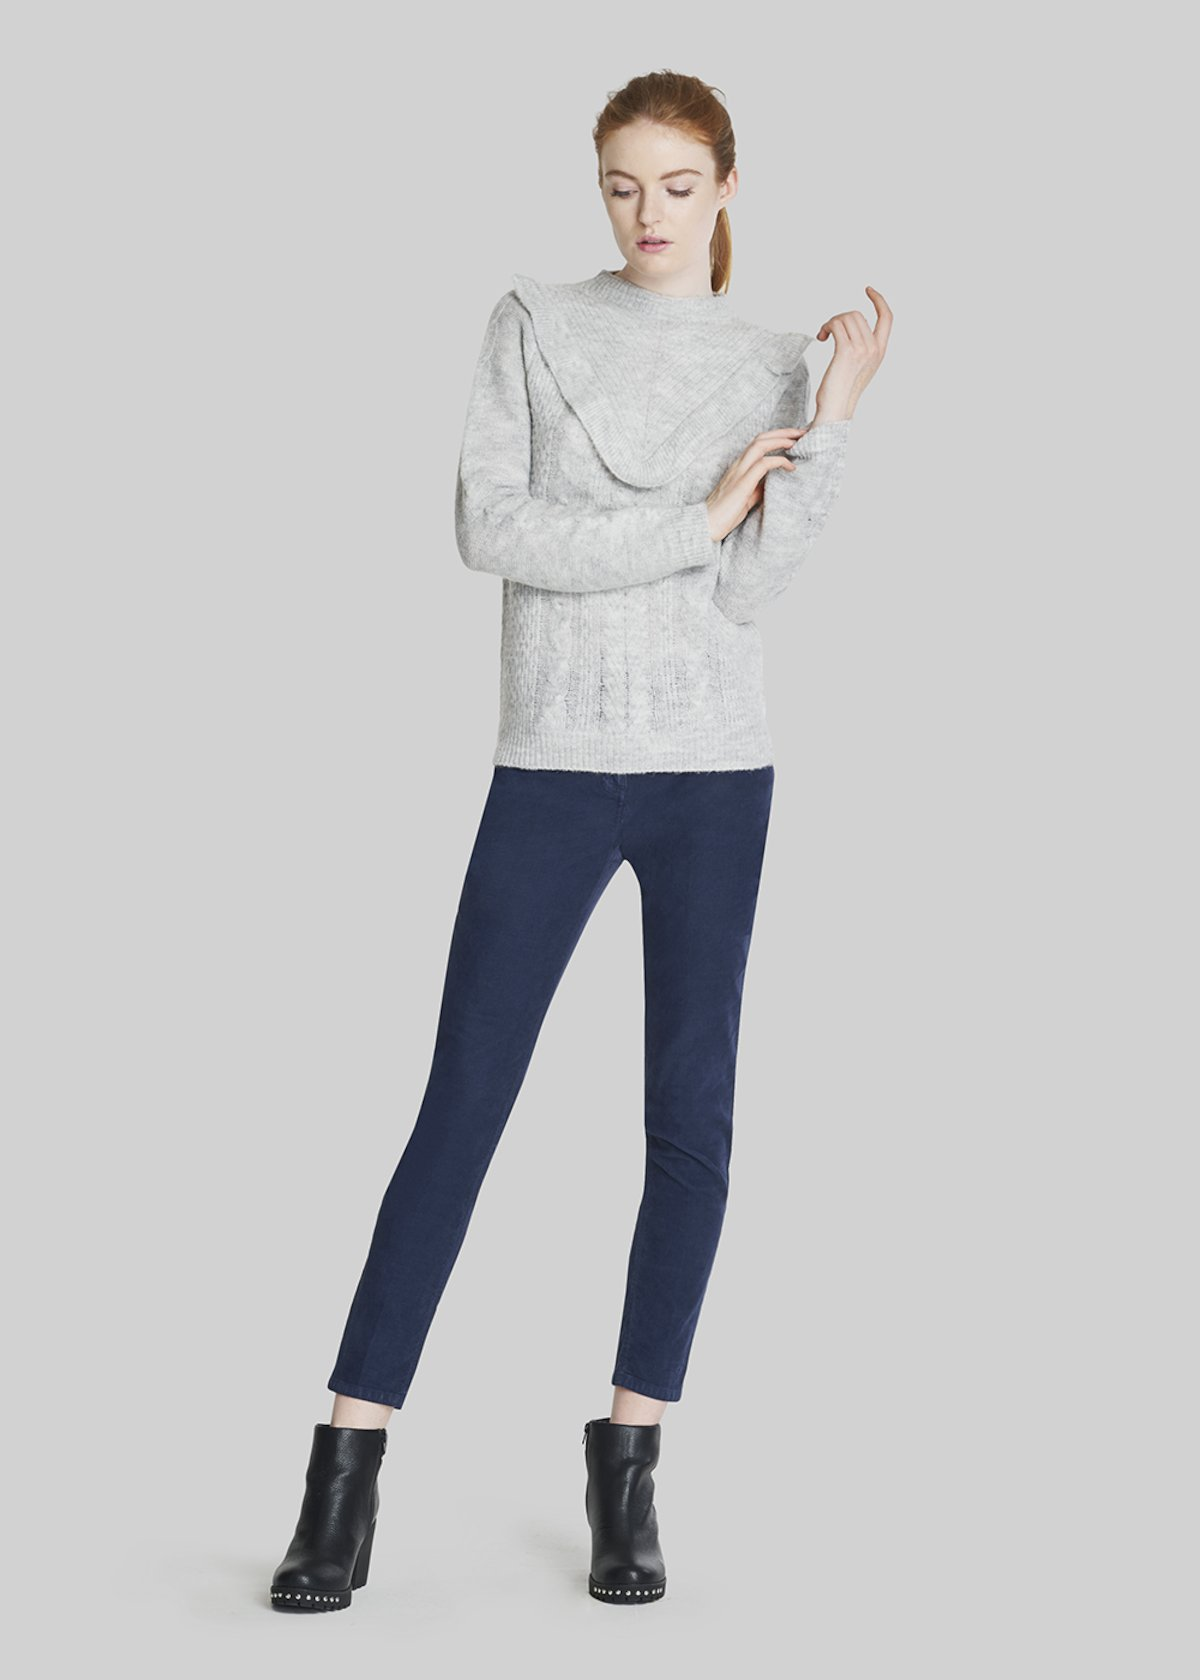 Motley sweater with high neck and ruffles - Light Grey Melange